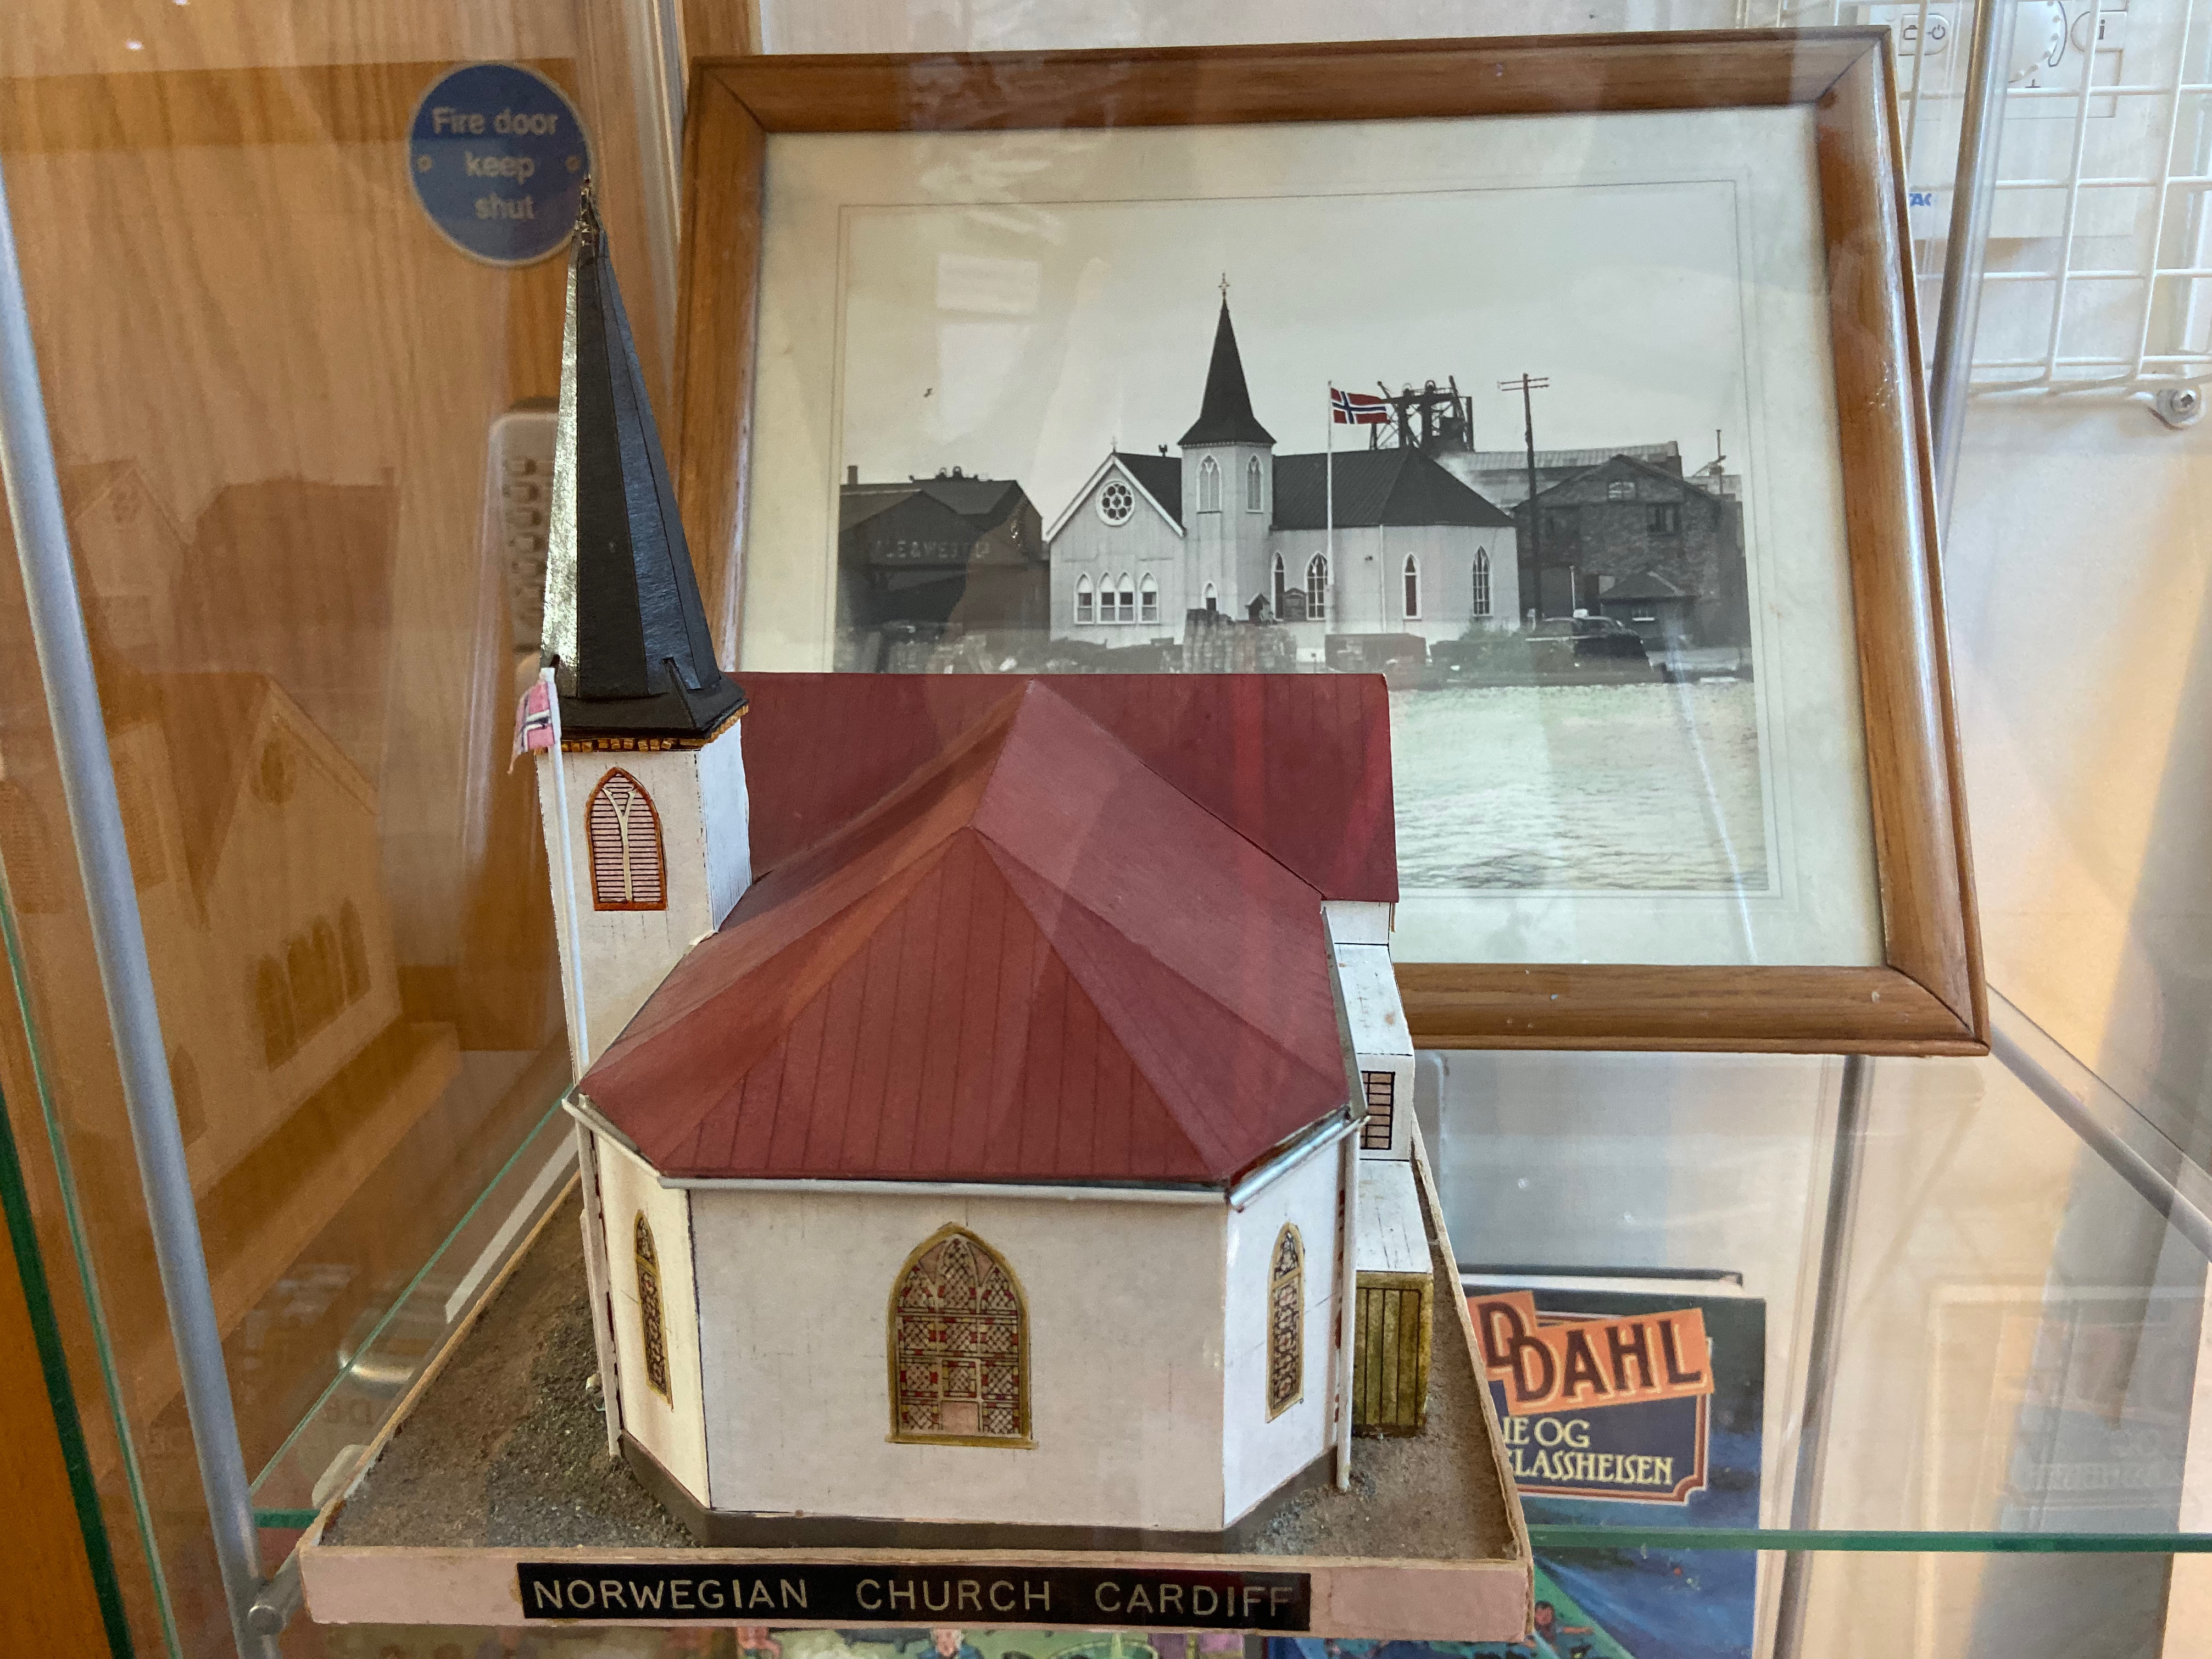 A small scale model of the Norwegian Church sits in front of an old picture of the building, inside a glass case